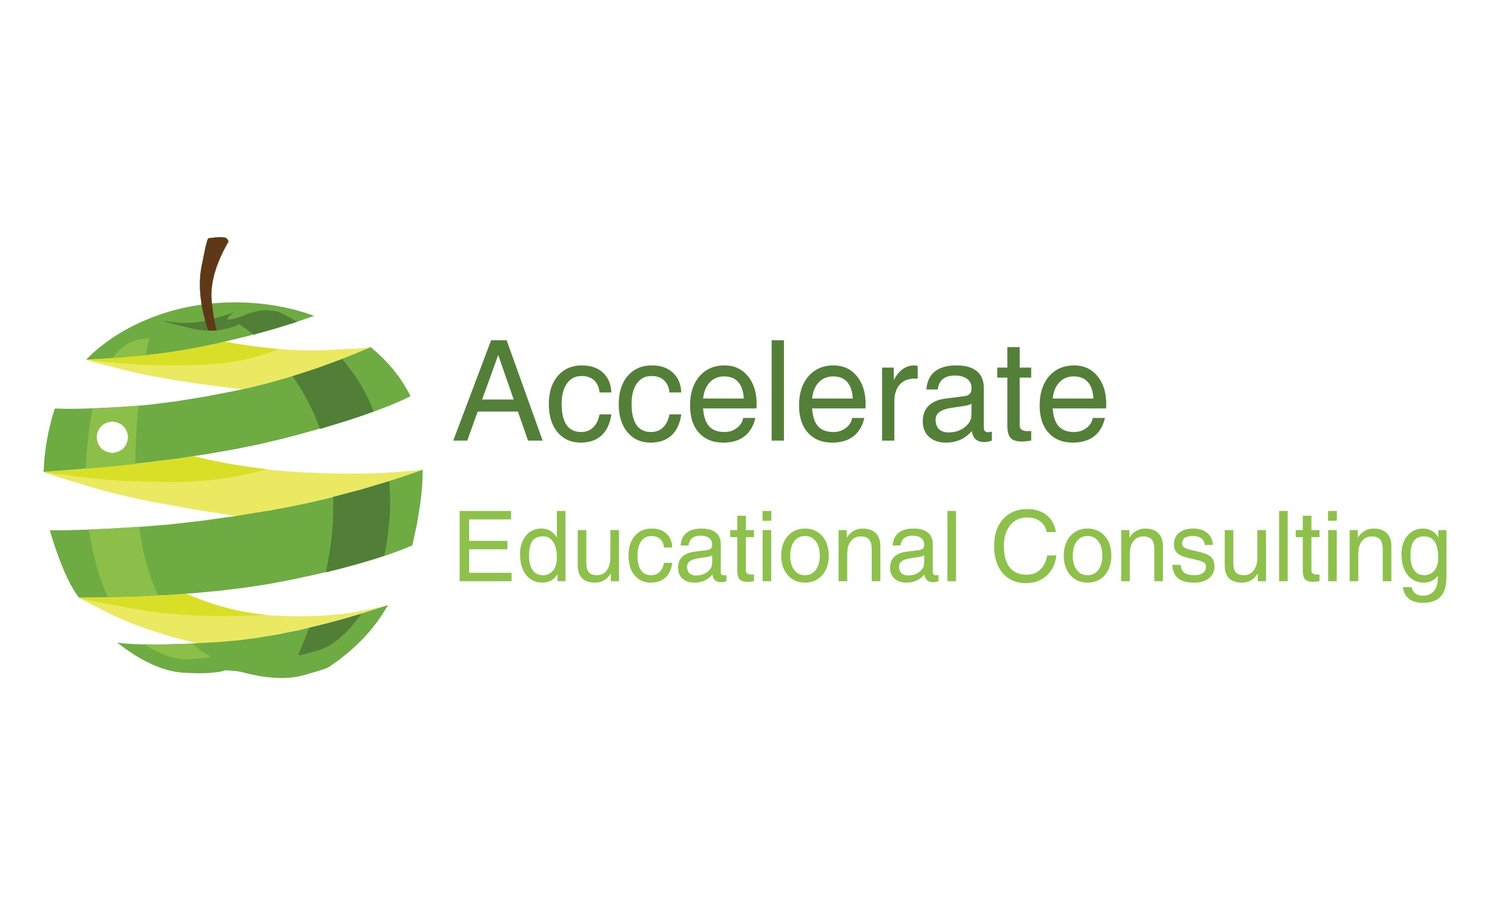 Accelerate (Educational) Consulting